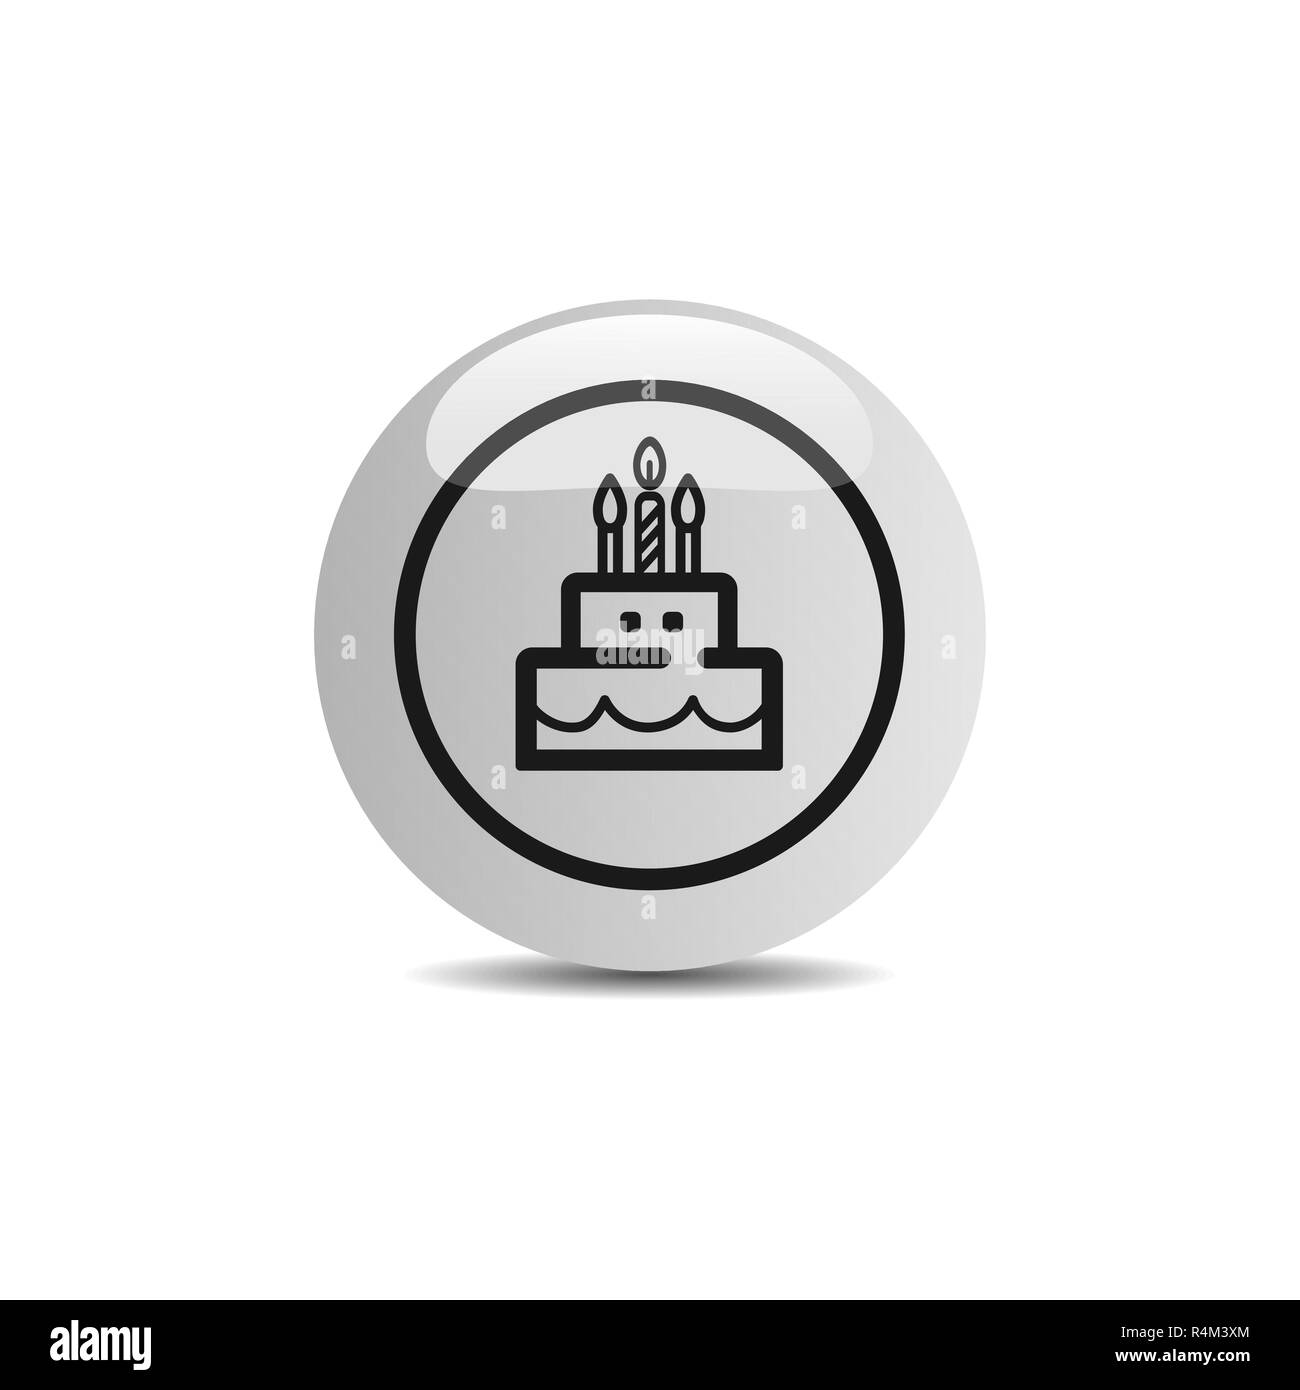 Birthday icon in a button on a white background. Vector illustration - Stock Vector